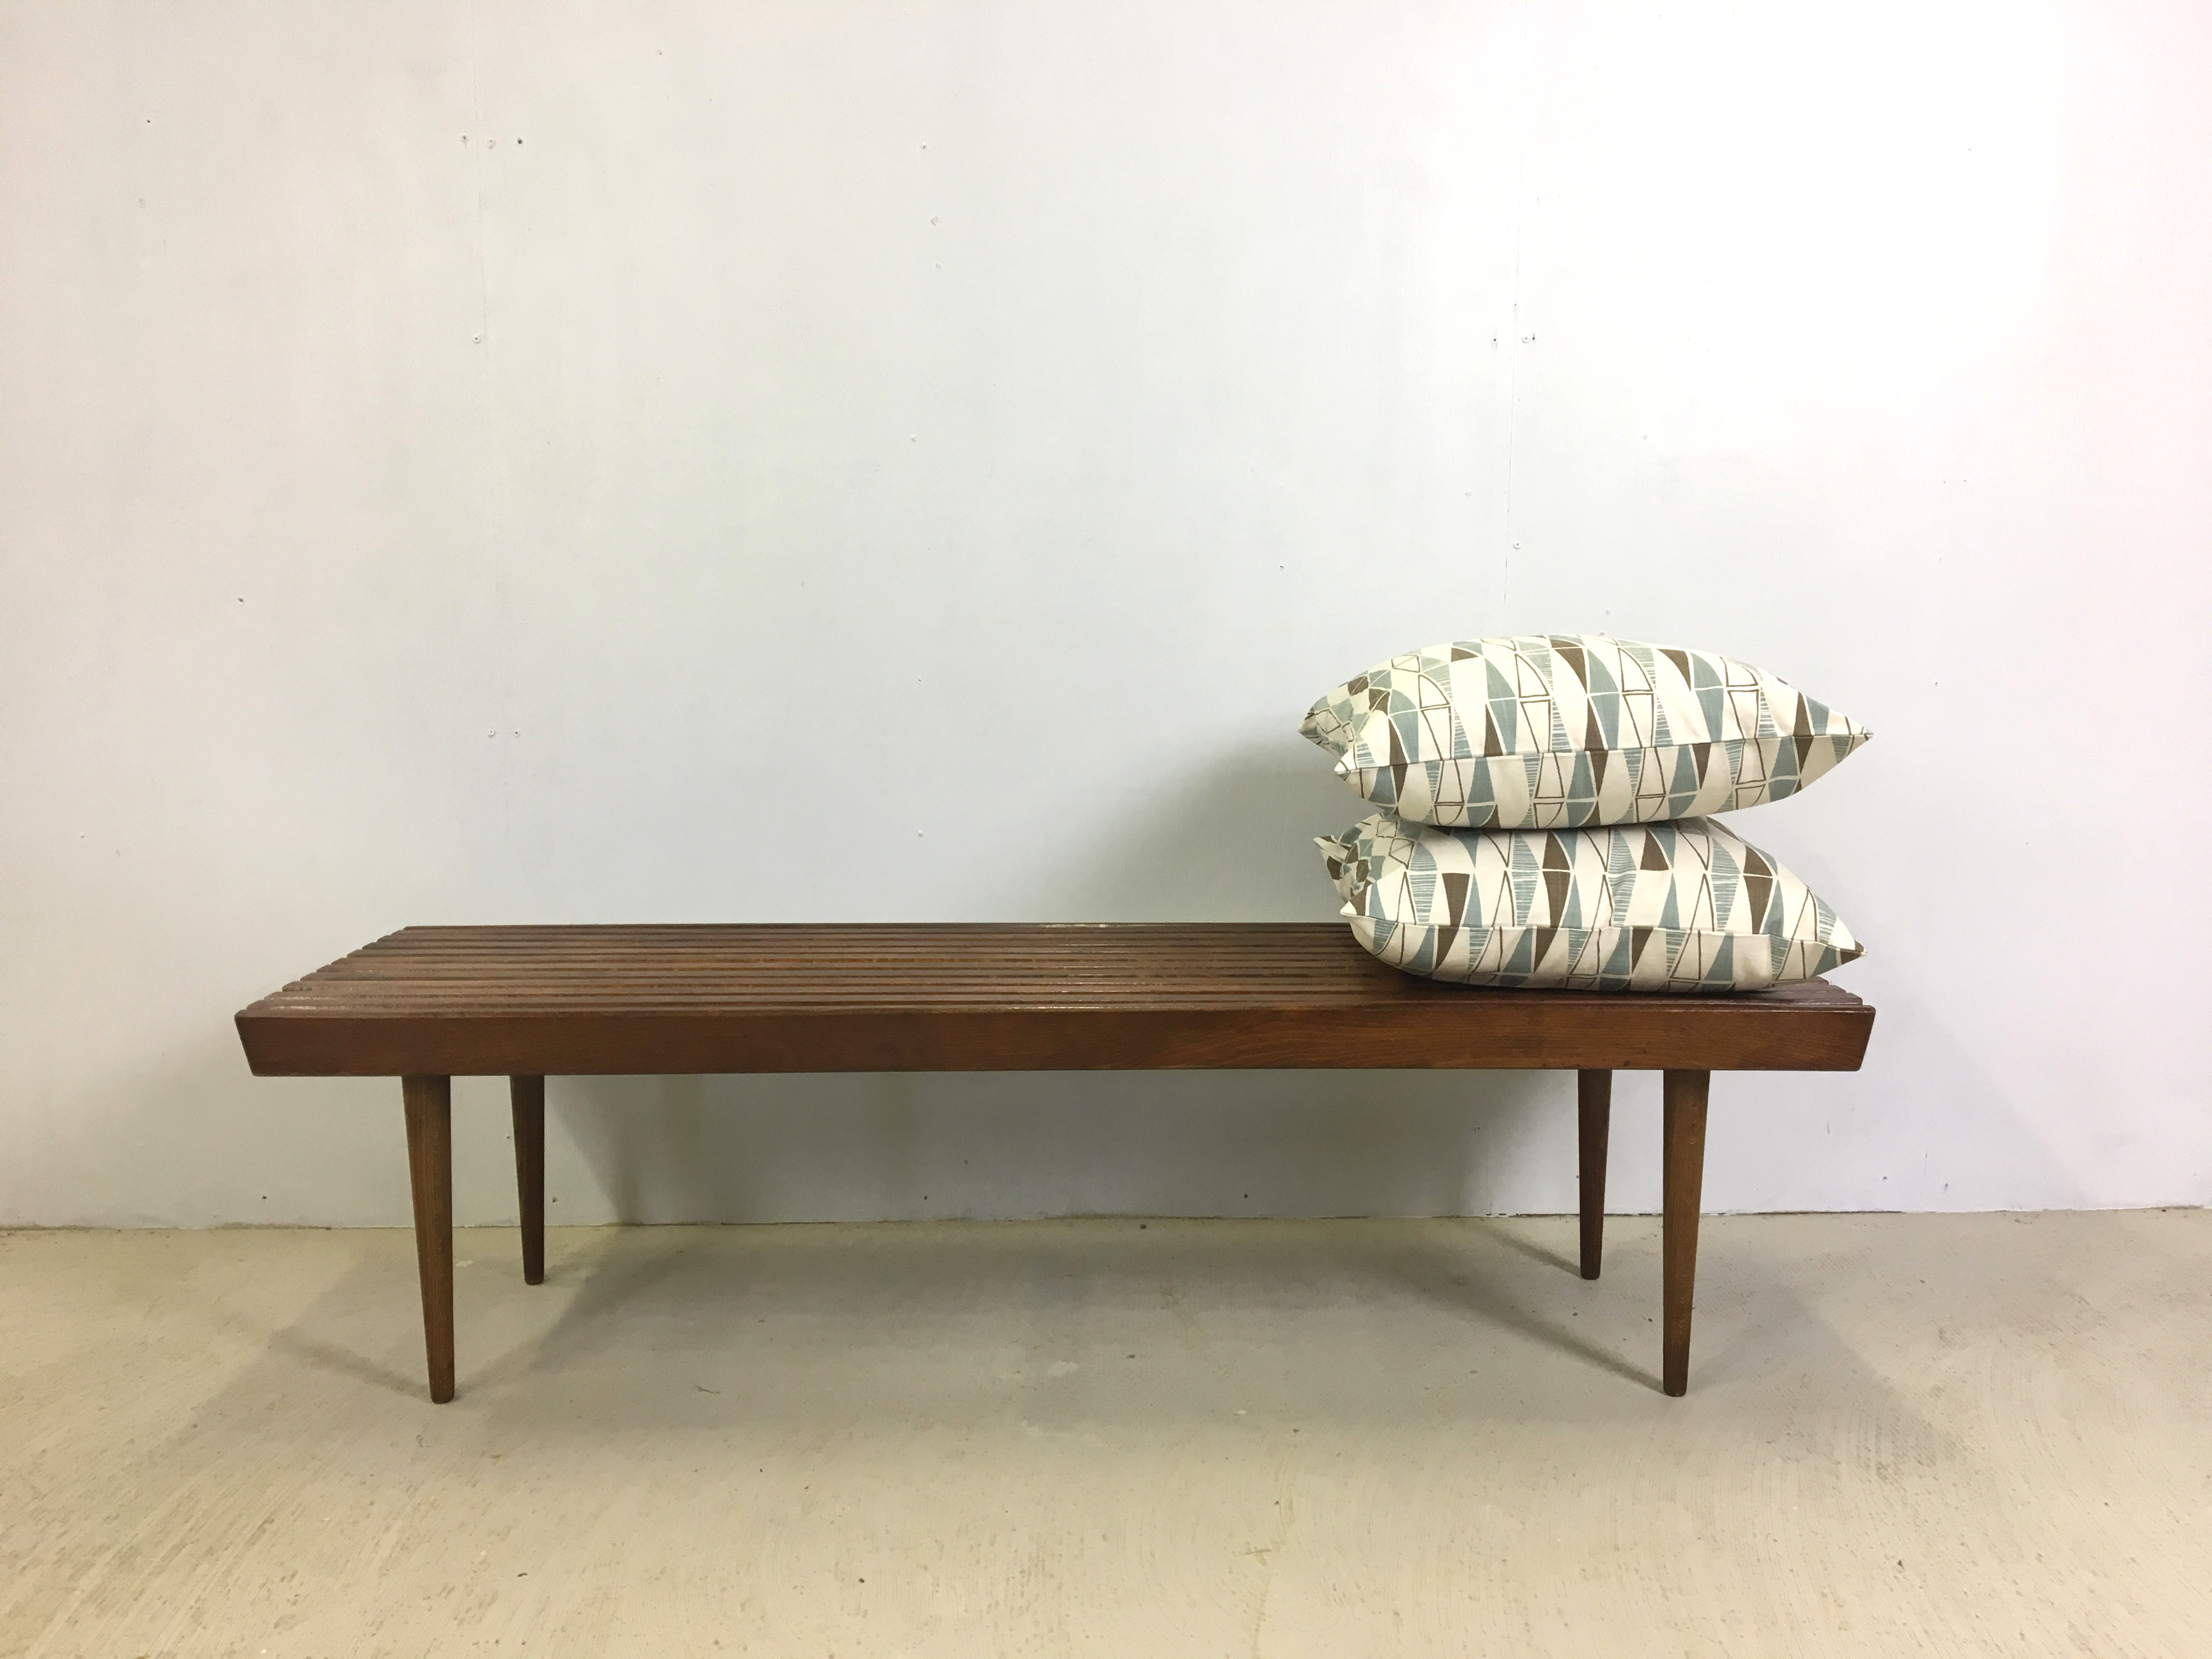 Slatted Walnut Bench or Coffee Table